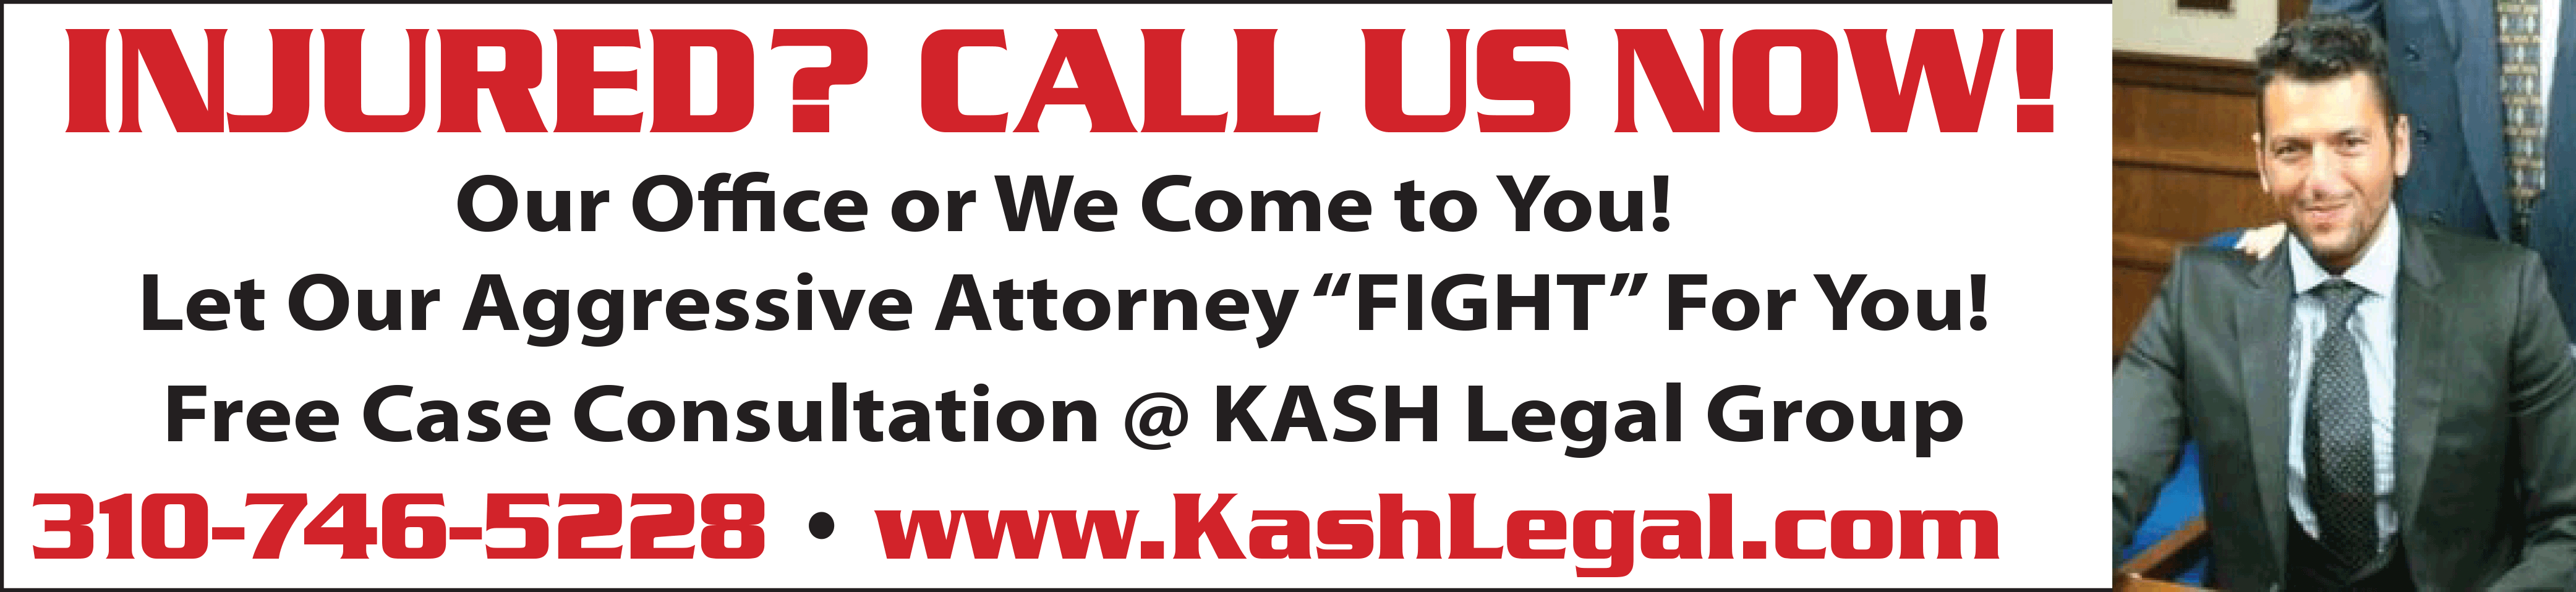 KASH LEGAL GROUP